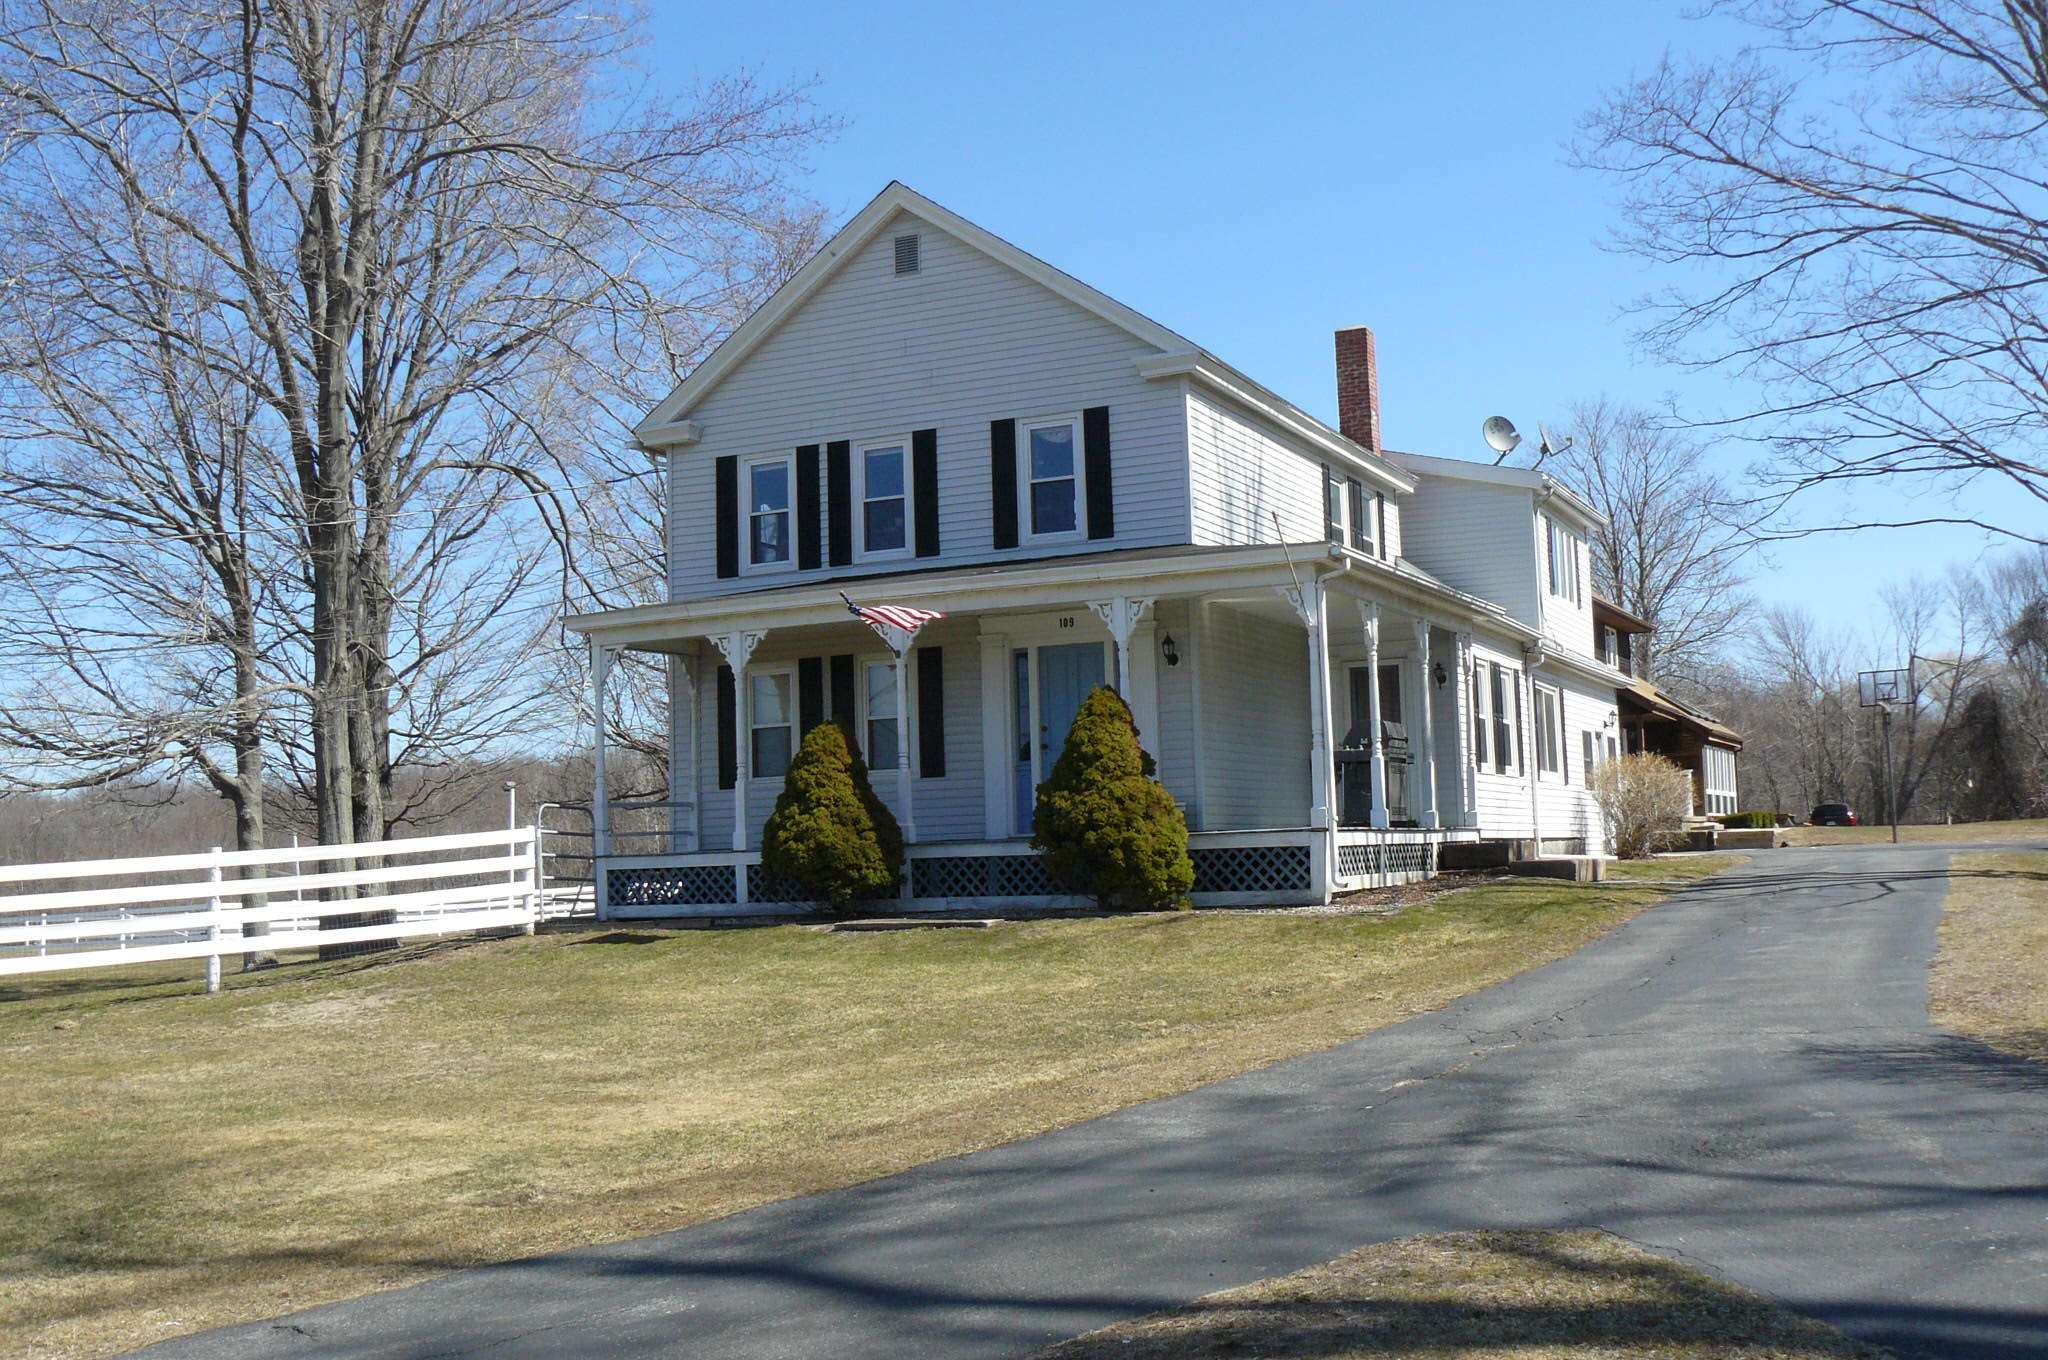 Granby Massachusetts MA FSBO Homes For Sale Granby By Owner